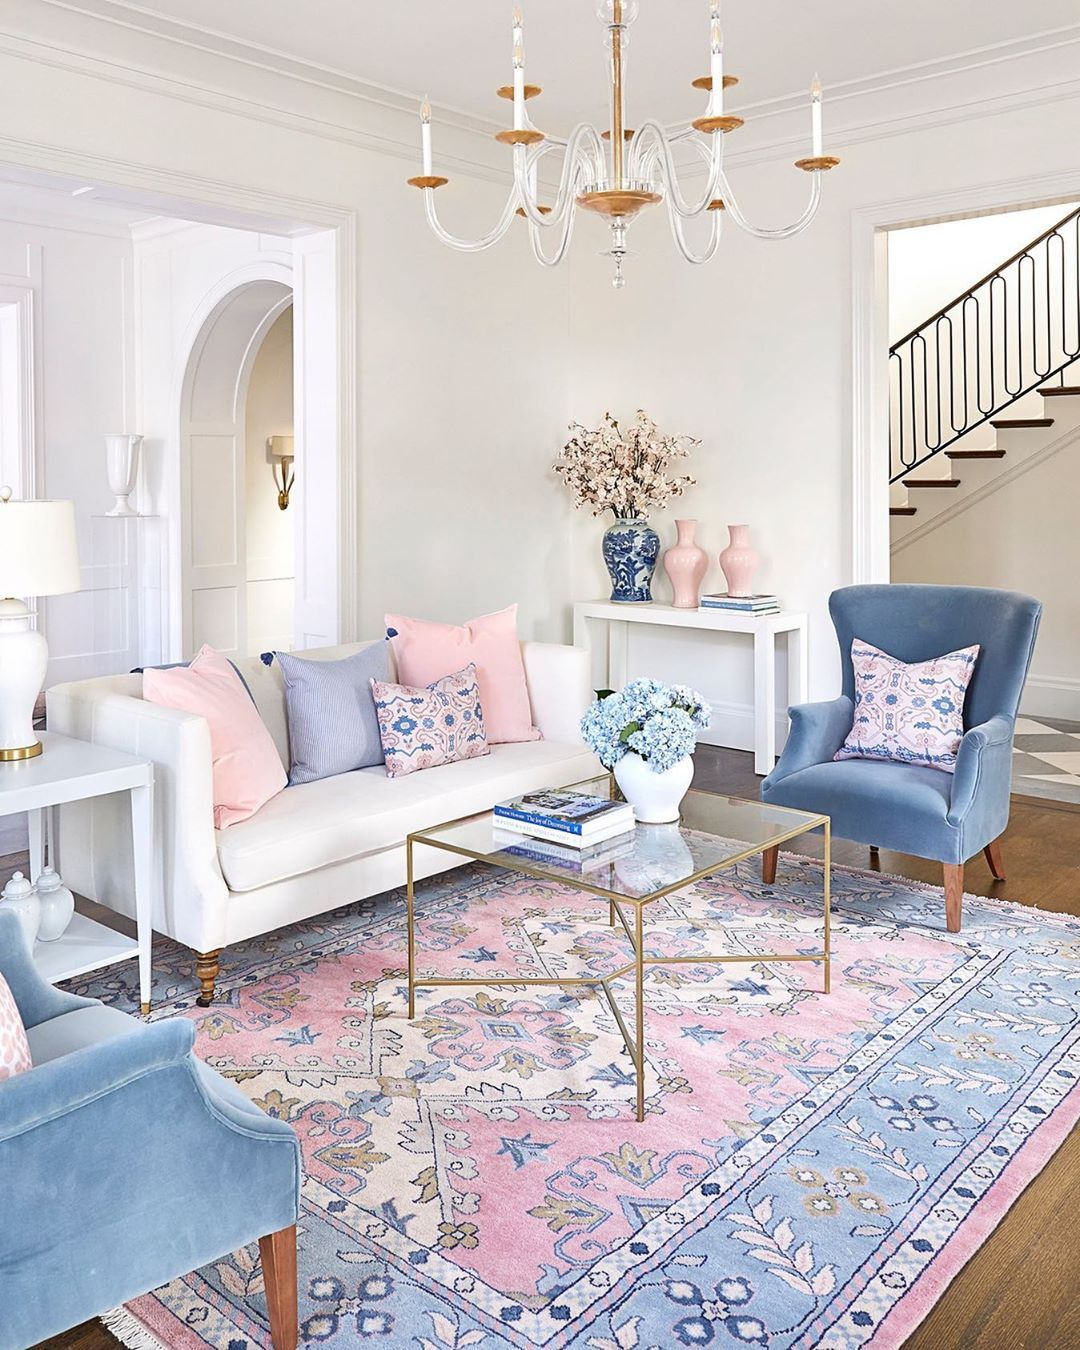 """Caitlin Wilson on Instagram: """"A room with so much pattern and architectural detail that I can hardly choose what my favorite part is. I love how the Hibiscus rug brings…"""""""